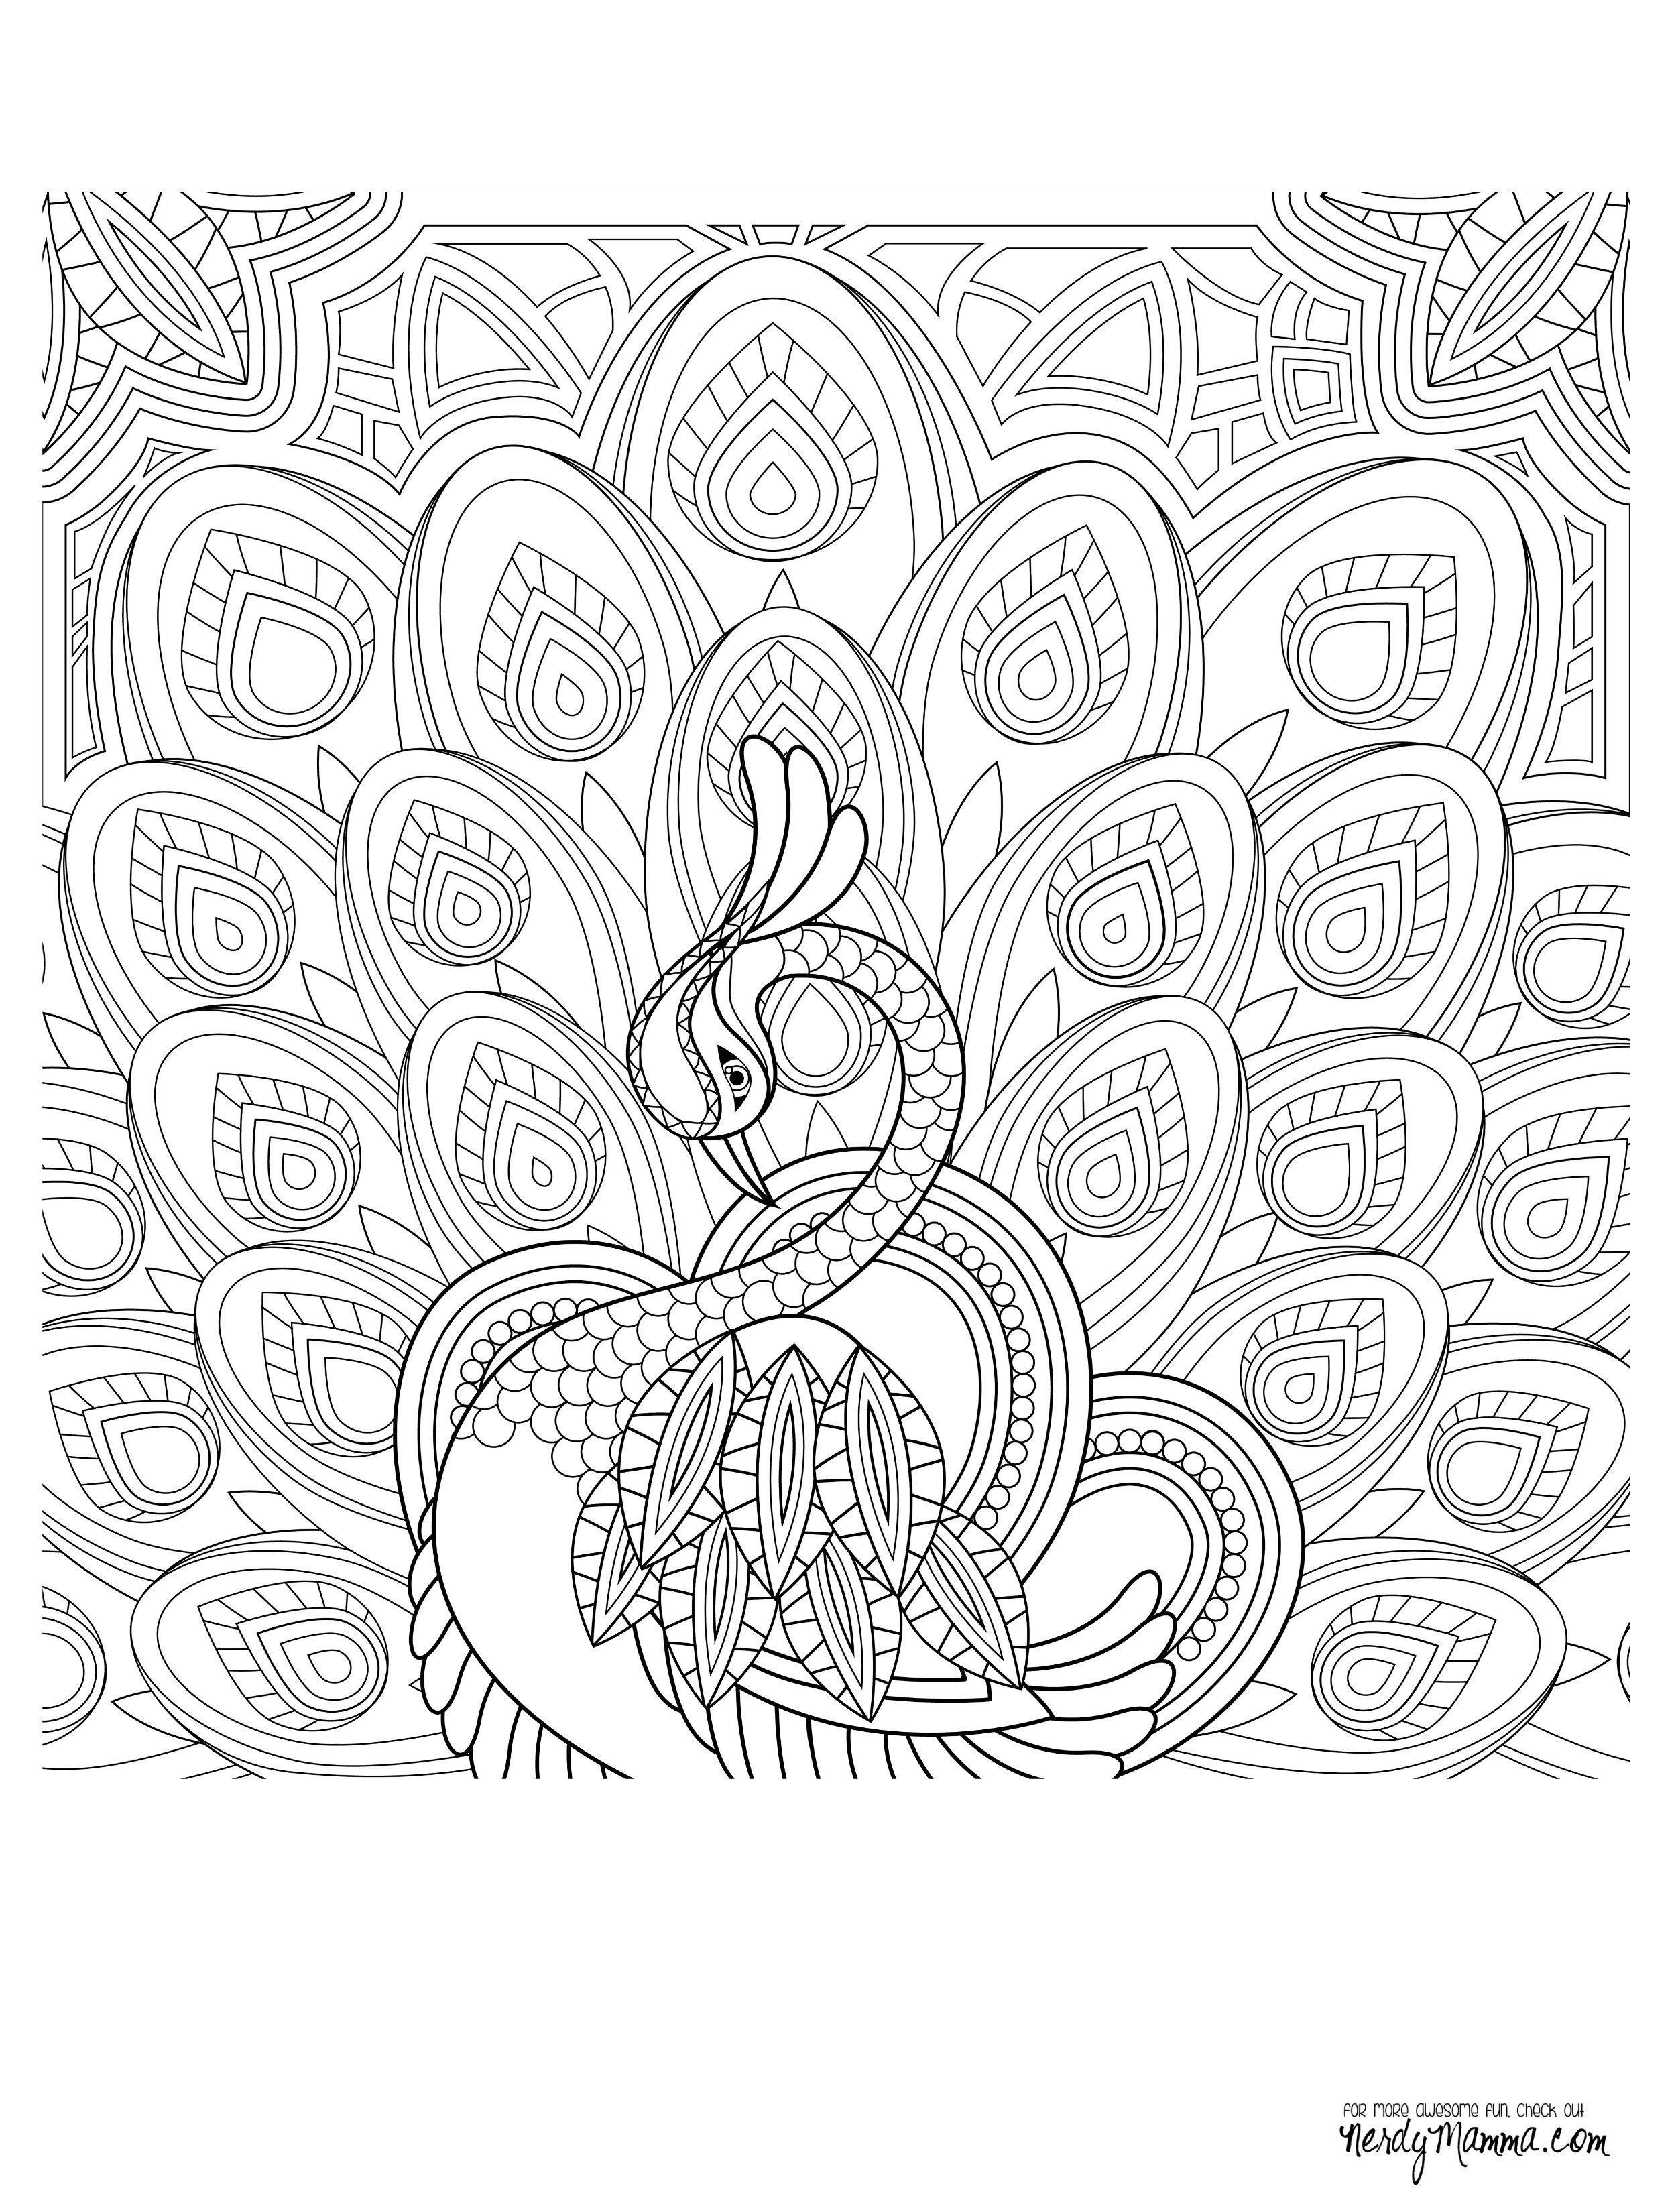 Calm the F Down Coloring Book Pages  Gallery 16s - Free For Children